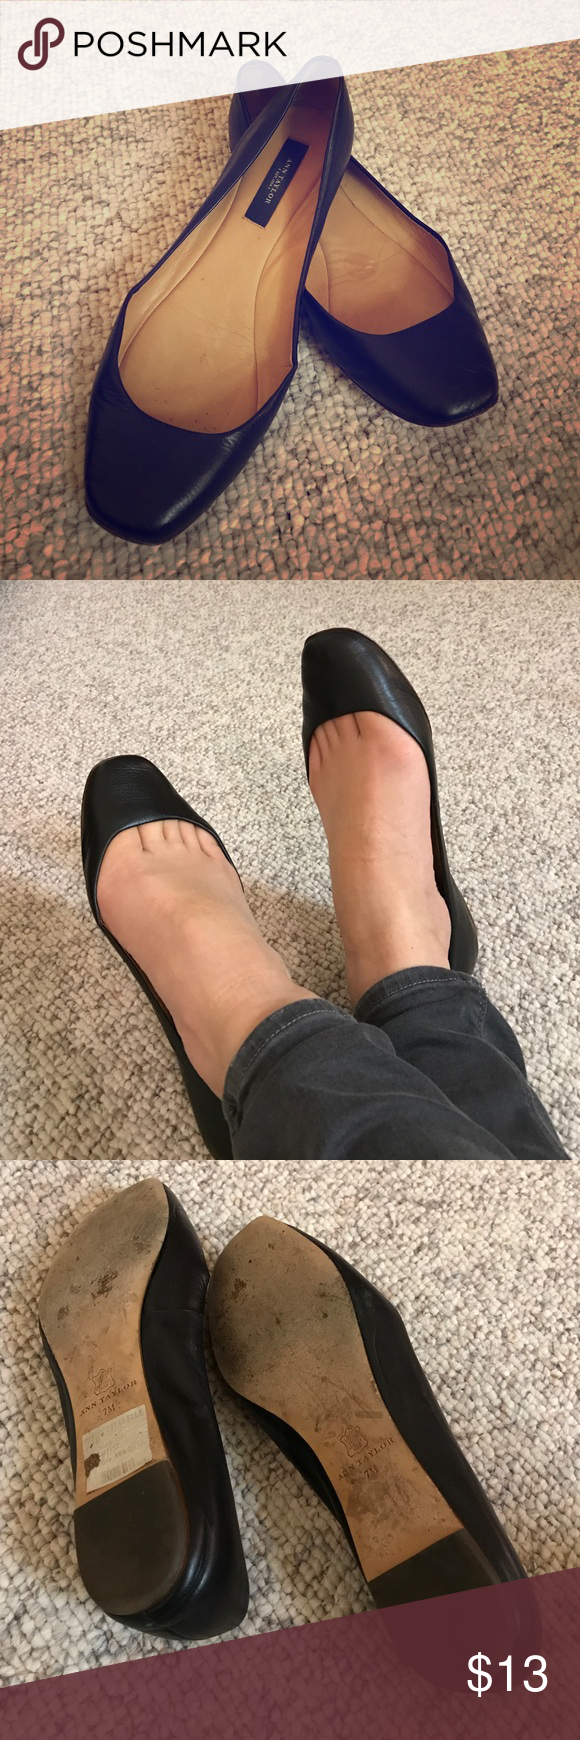 00bf51b1785 Ann Taylor Black Perfect Flat Elle - size 7 Black soft Leather flats with  sexy toe cleavage